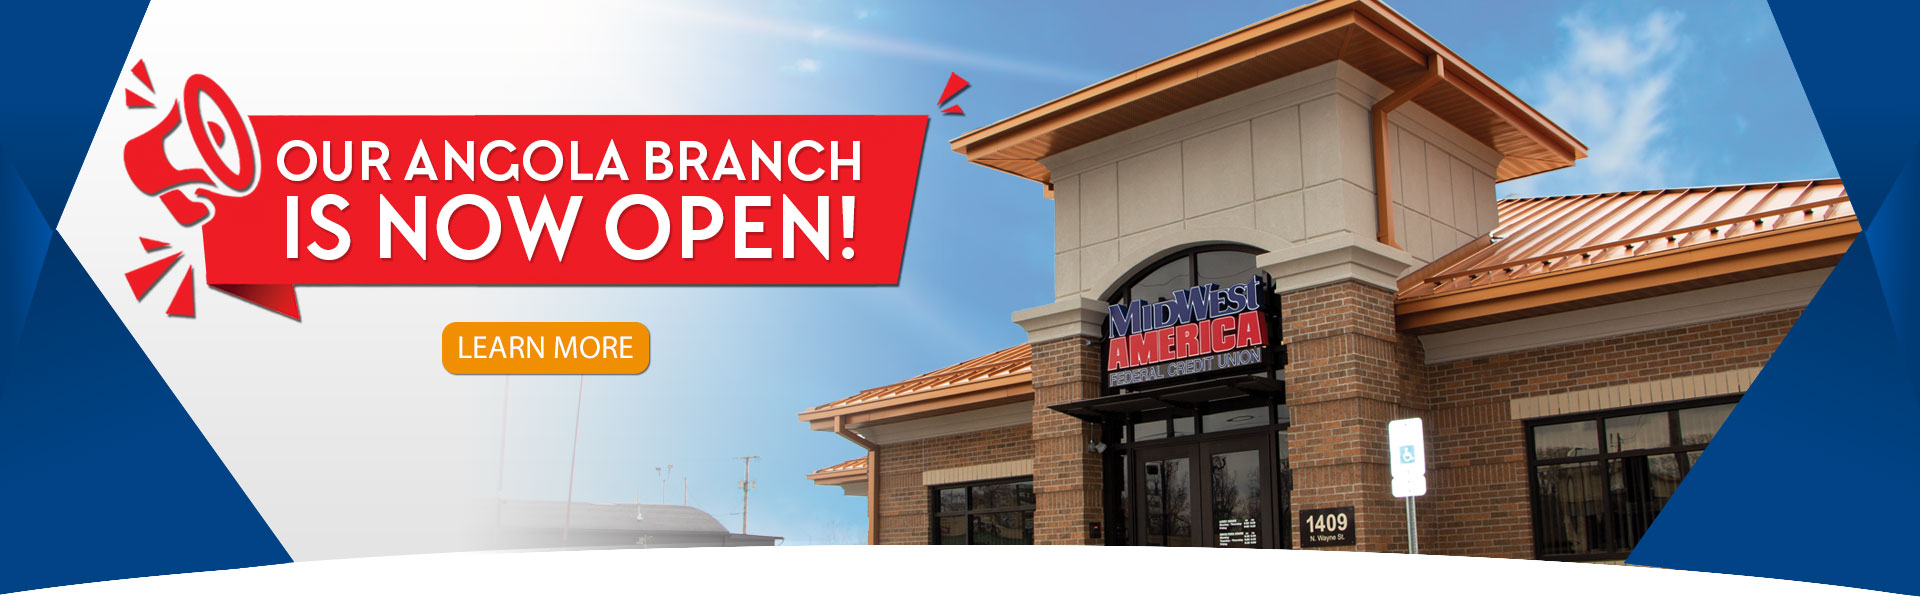 angola branch now open